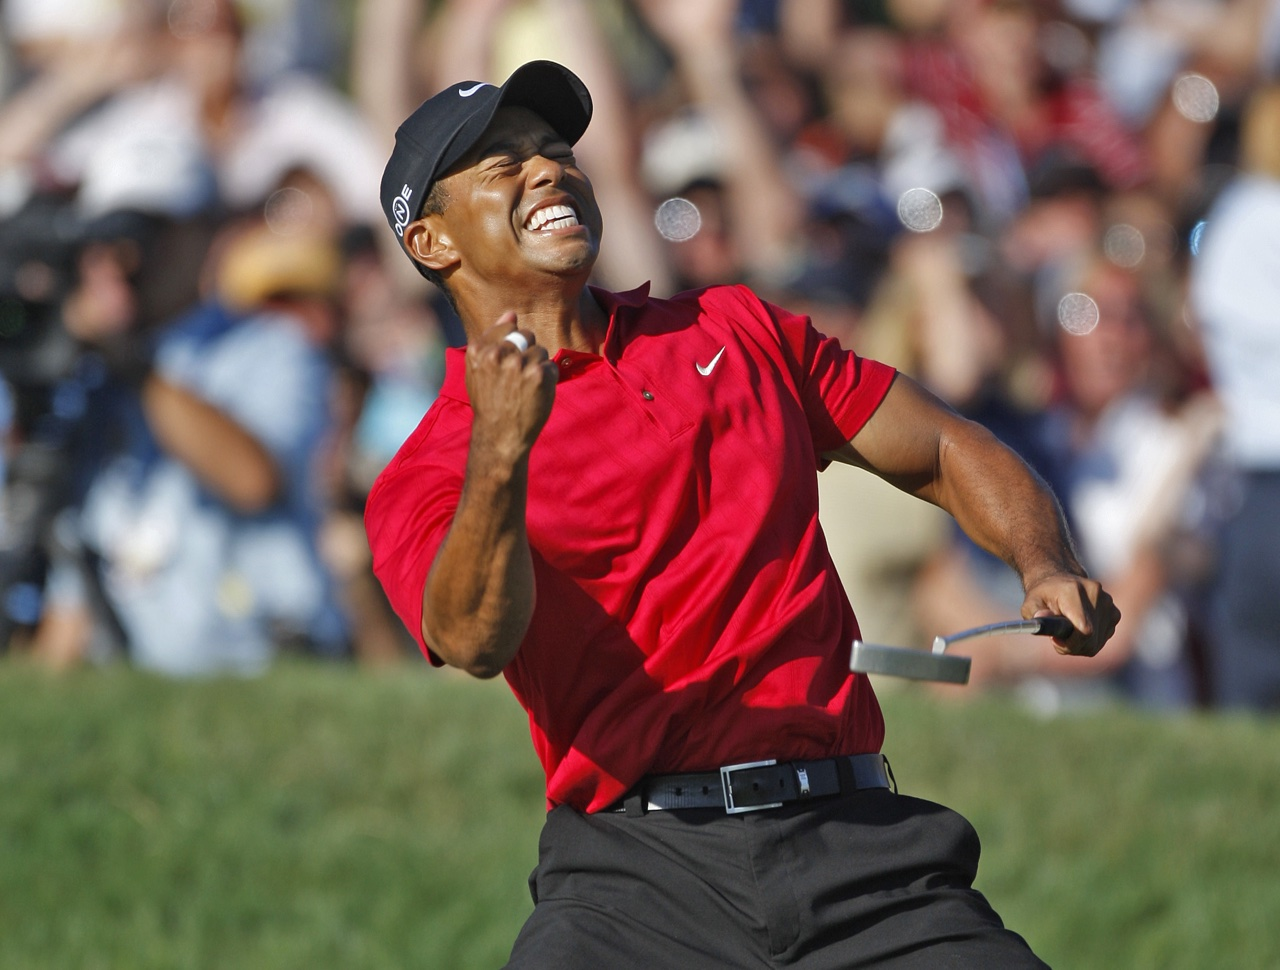 Tiger Woods celebrates forcing a playoff in the 2008 U.S. Open